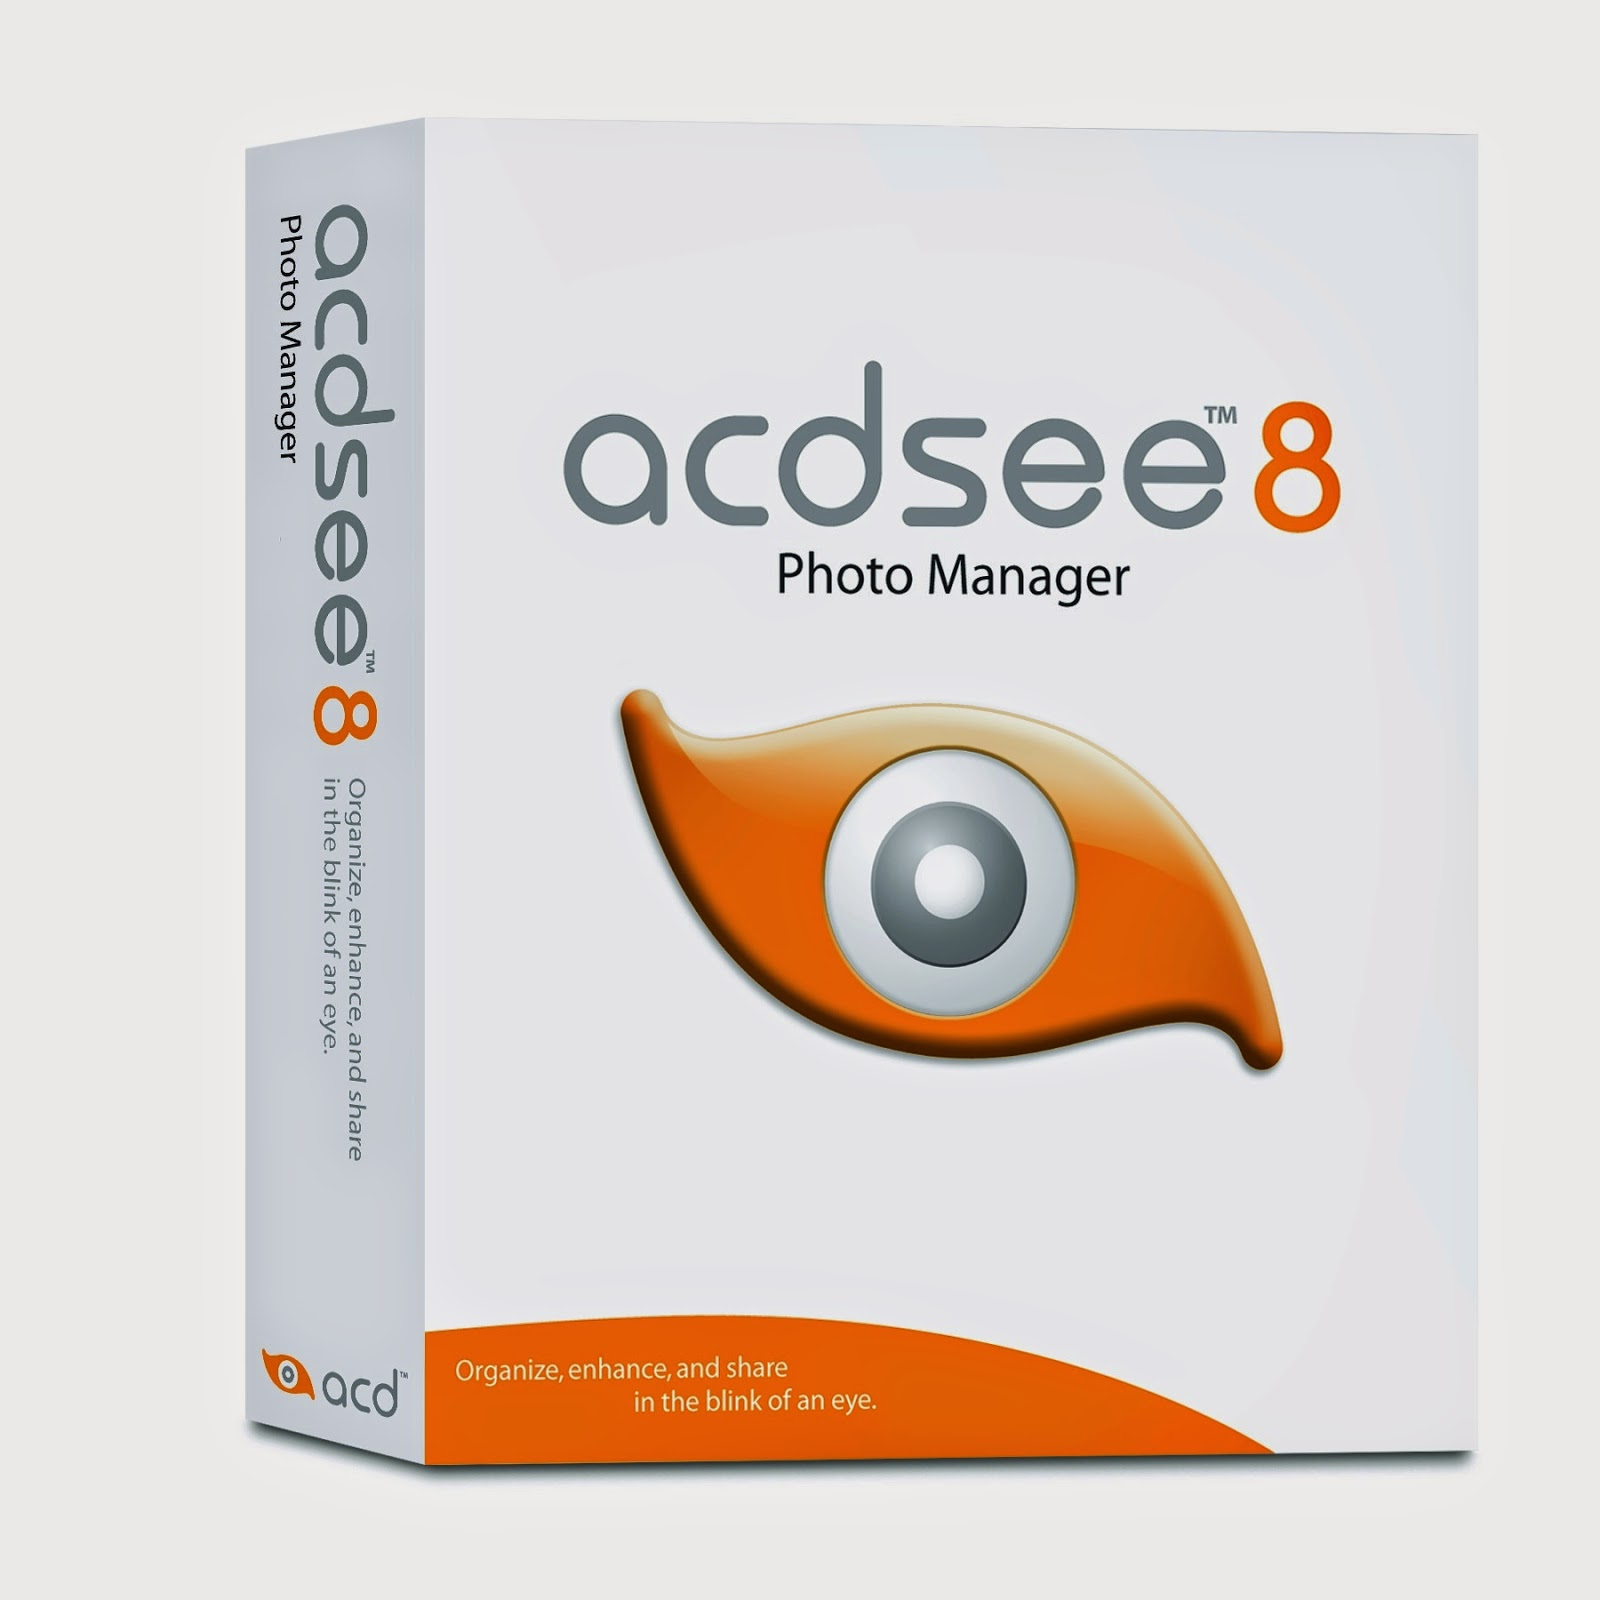 Acdsee pro 8 full download free - kcenettiho's blog